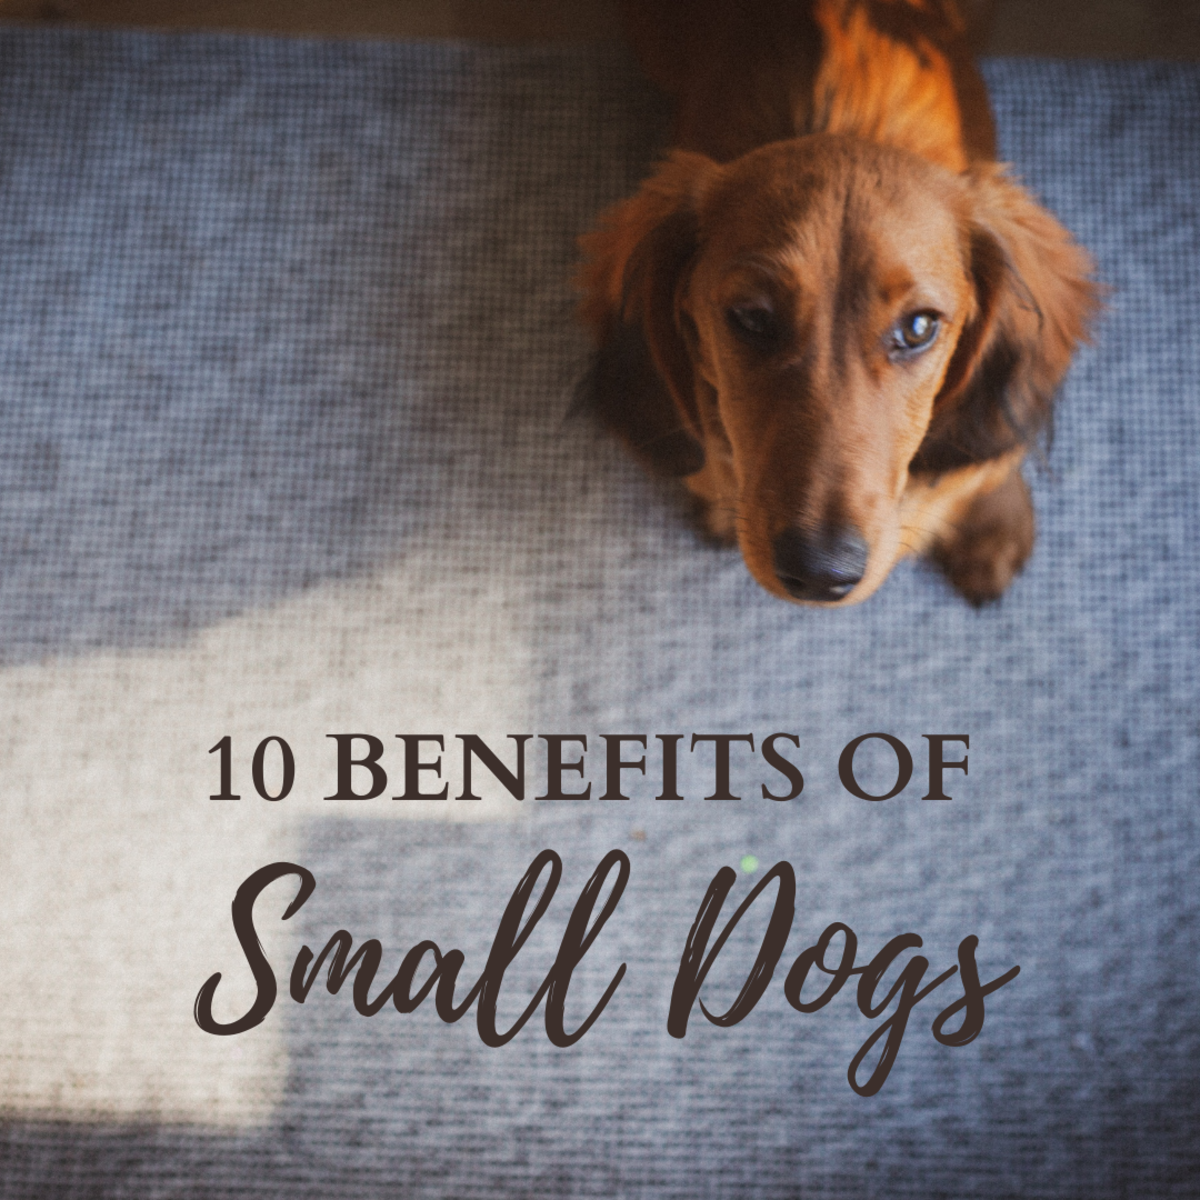 The top 10 benefits of owning a small dog